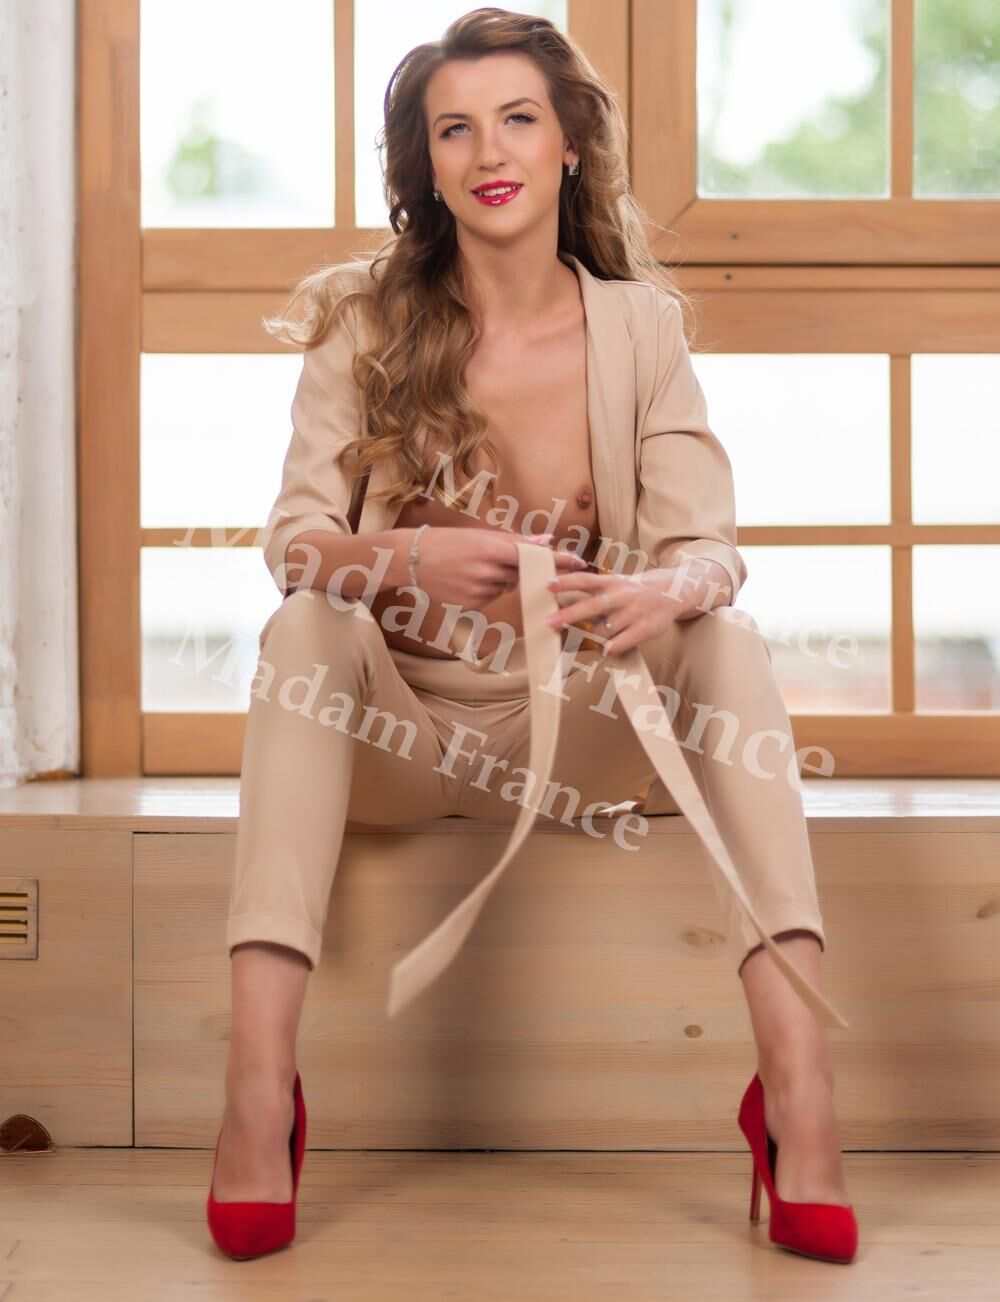 Ella model on Madam France escort service